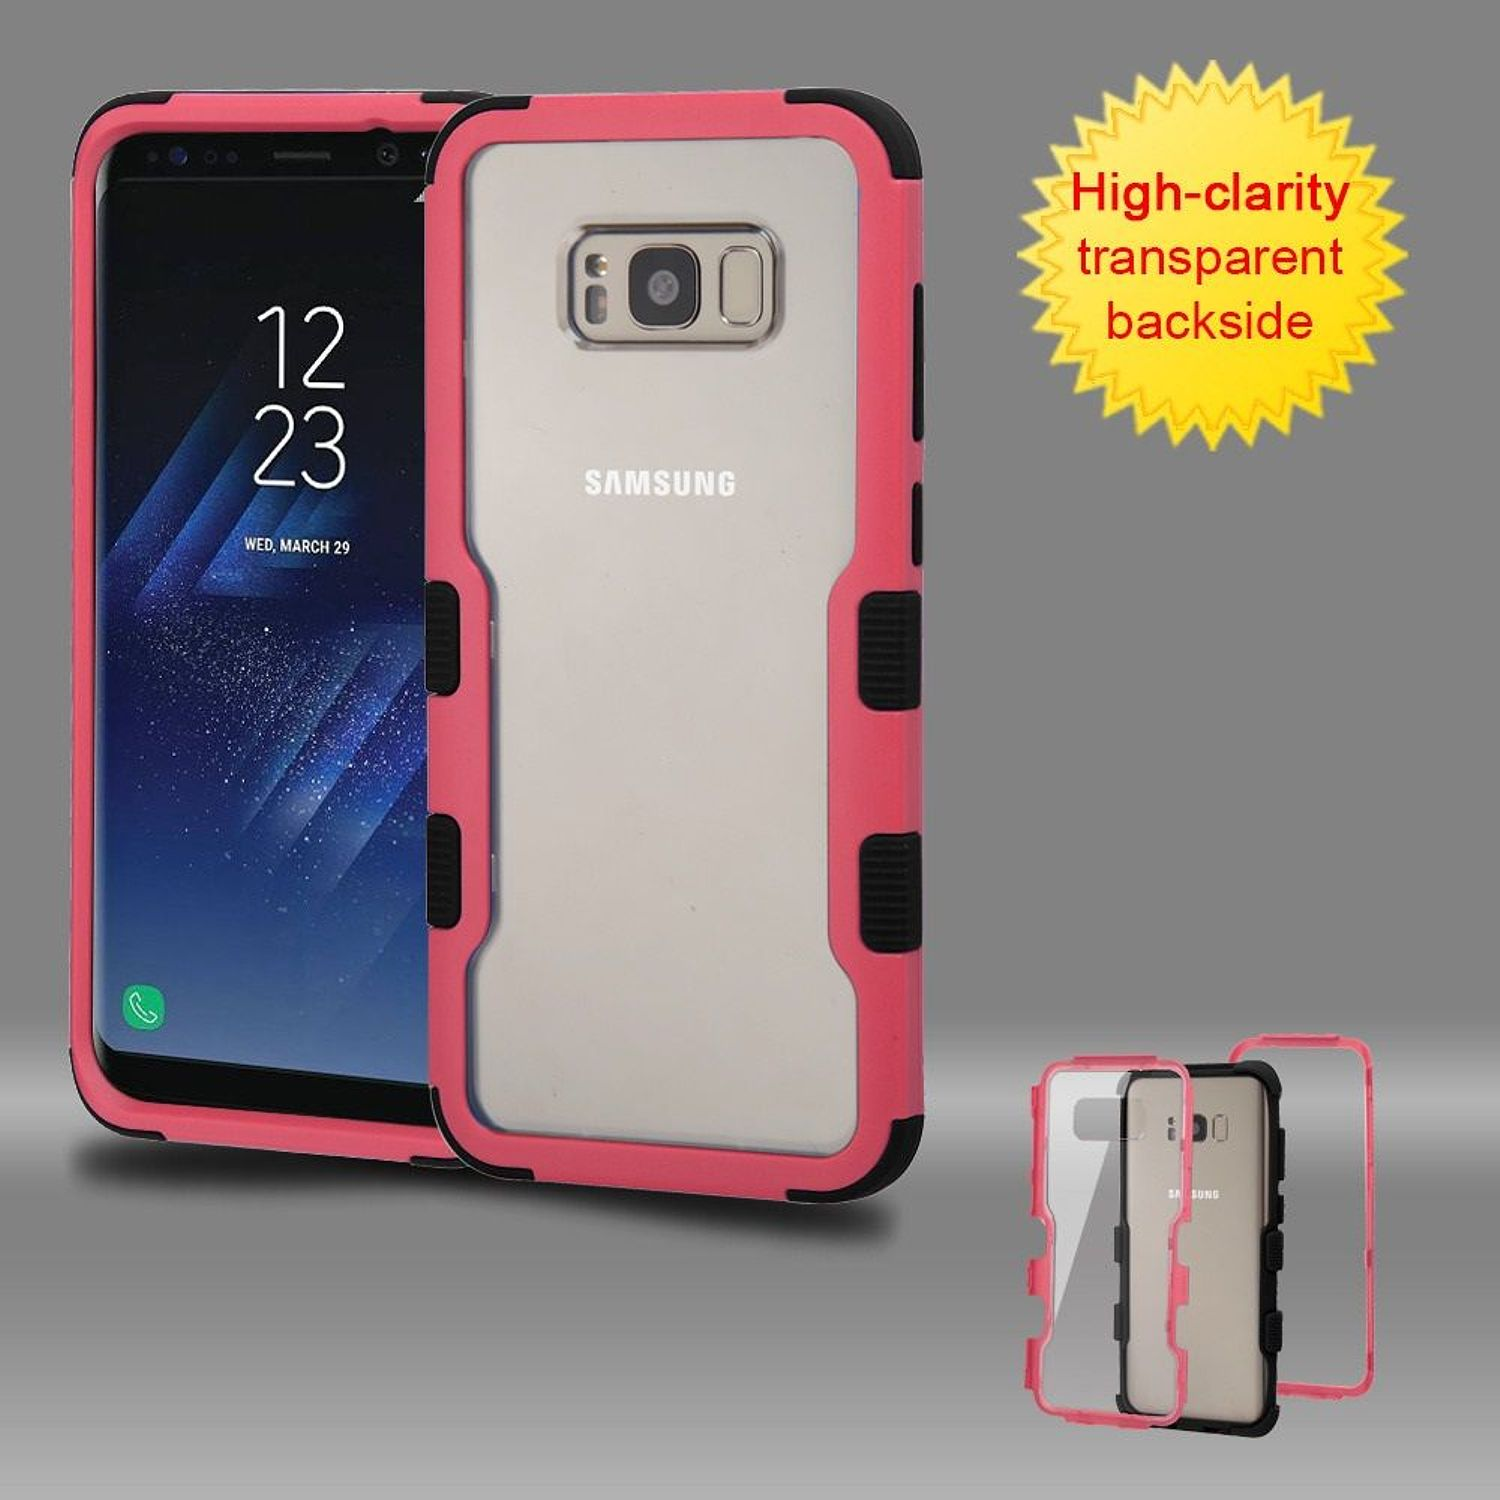 Samsung Galaxy S8 Plus Case, Samsung Galaxy S8+ Case, by Insten Tuff Dual Layer [Shock Absorbing] Hybrid Hard Plastic/Soft TPU Rubber Clear Case Phone Cover For Samsung Galaxy S8 Plus S8+, Pink/Black